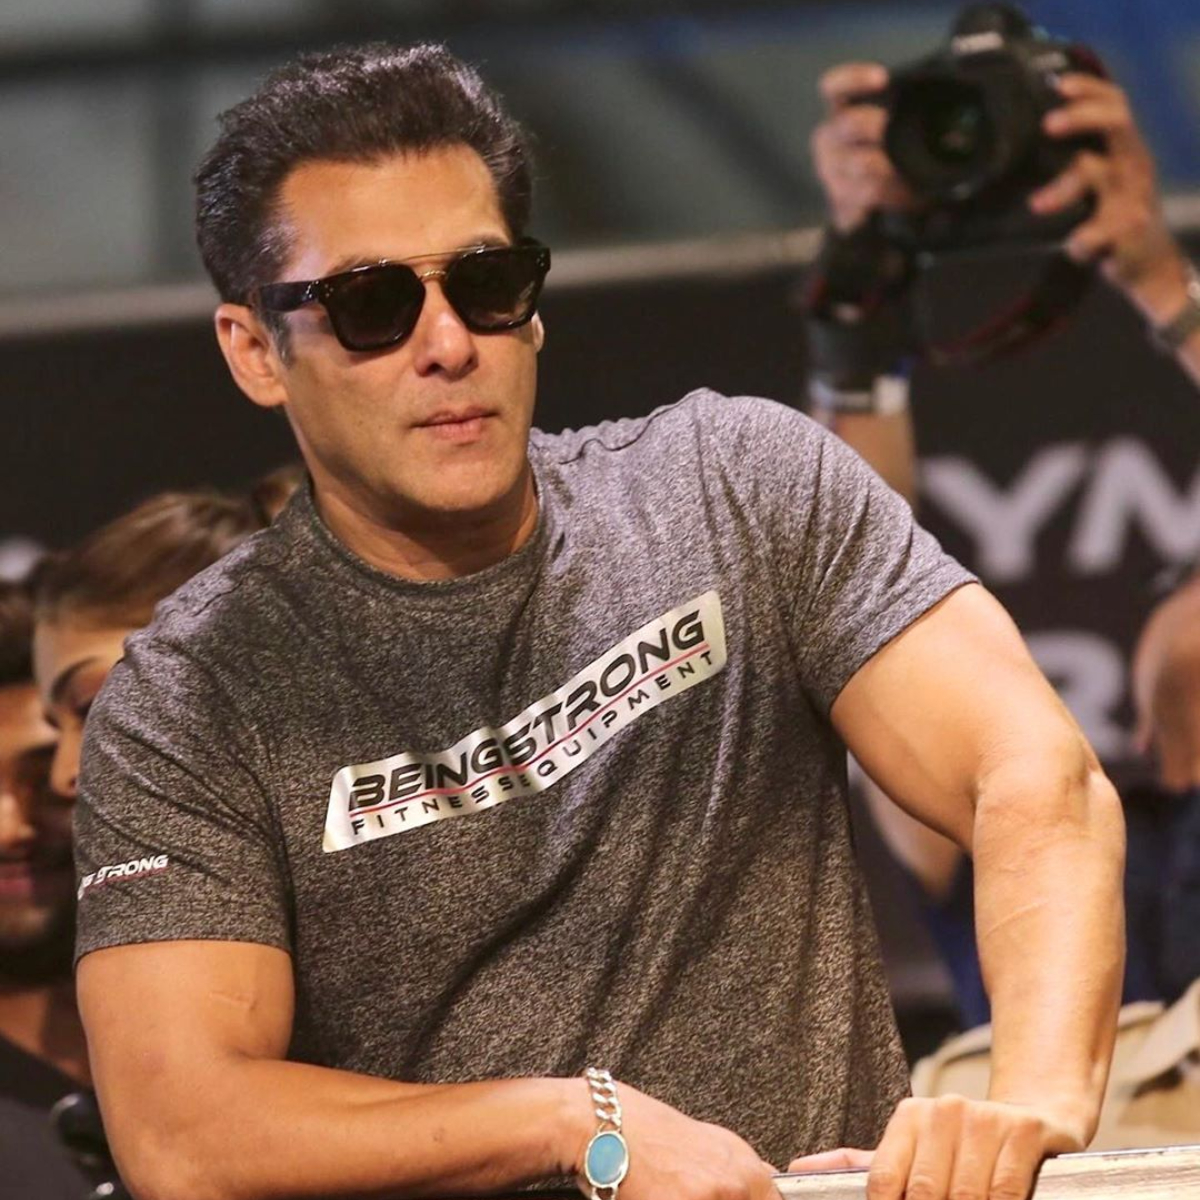 Radhe: Your Most Wanted Bhai: Salman Khan ditches his fancy car and chooses to cycle to the sets of the film